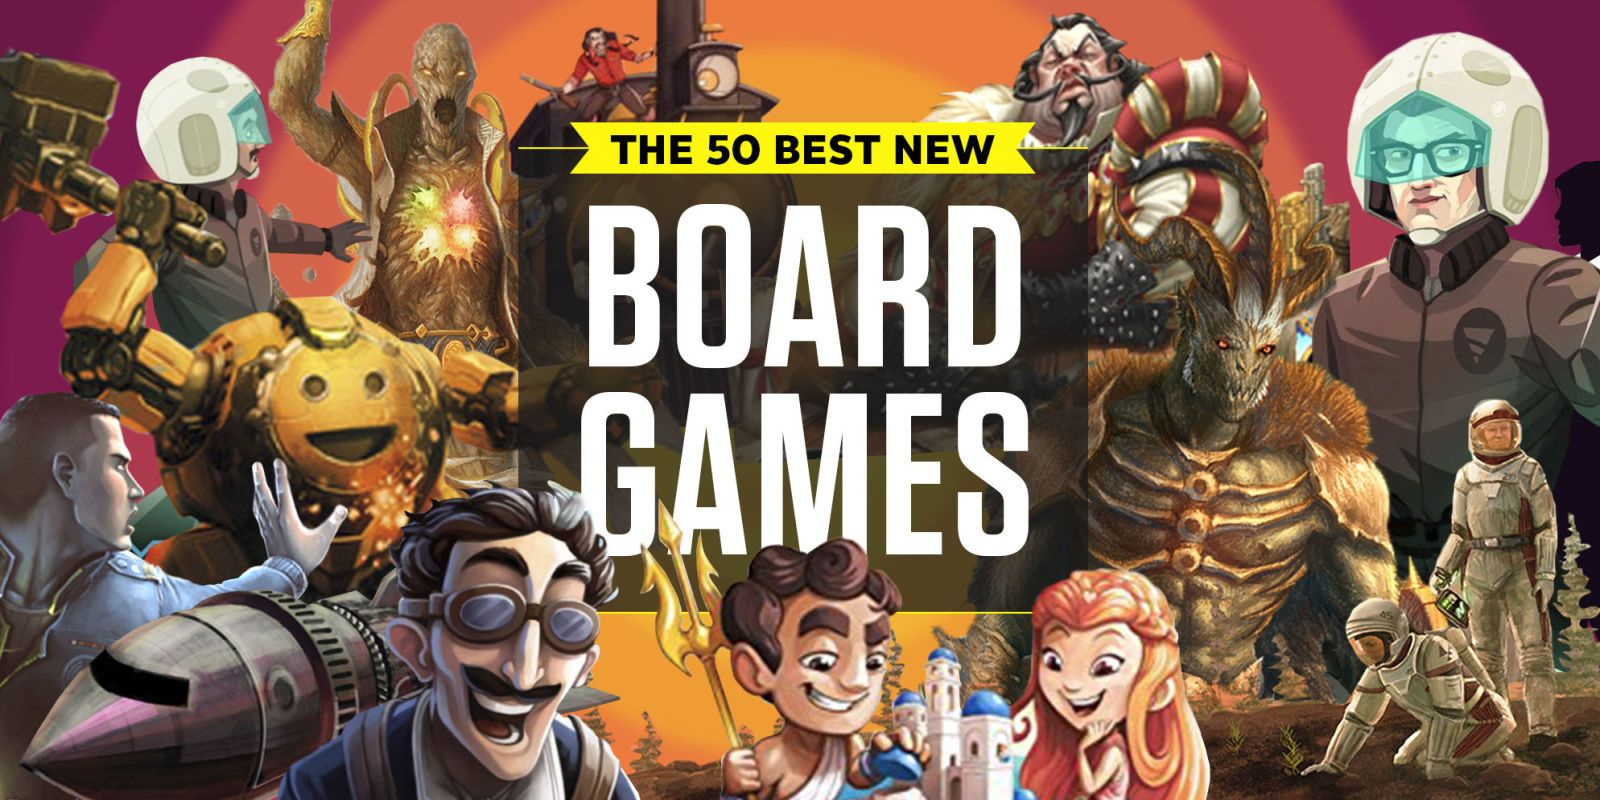 50 Best Board Games of 2018   Best New Adult Board Games Sure  the classic board games like Monopoly  Risk  and Battleship are still  great fun  But the number of new games has exploded in the last several  years as